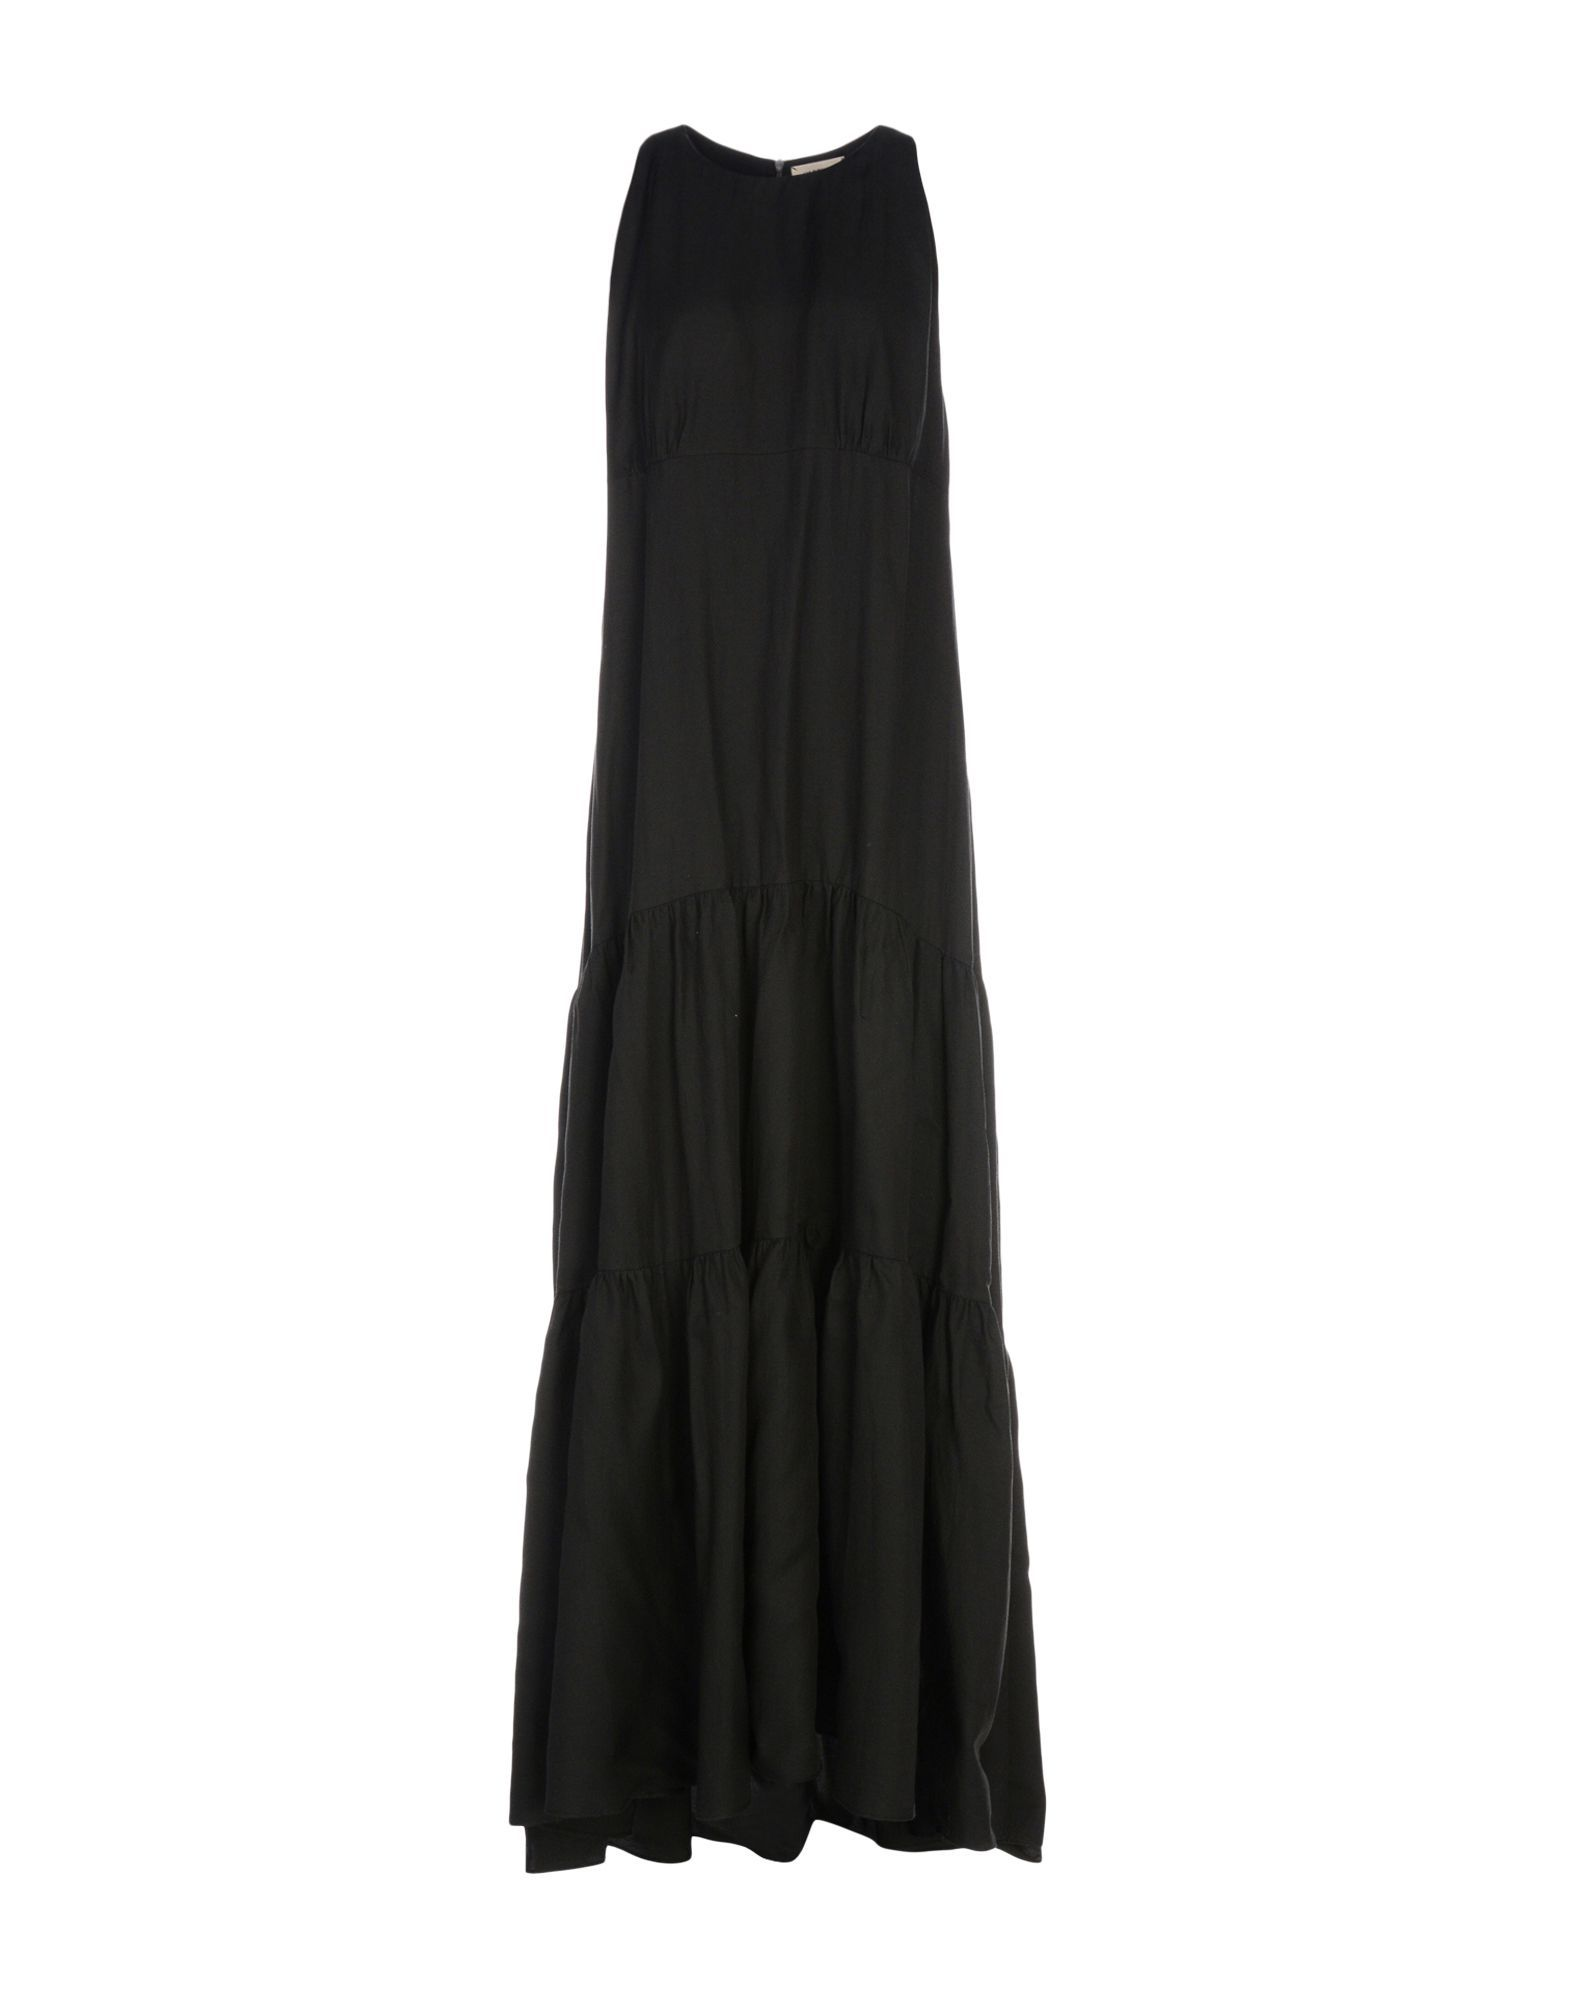 L'Agence Black Sleeveless Full Length Dress